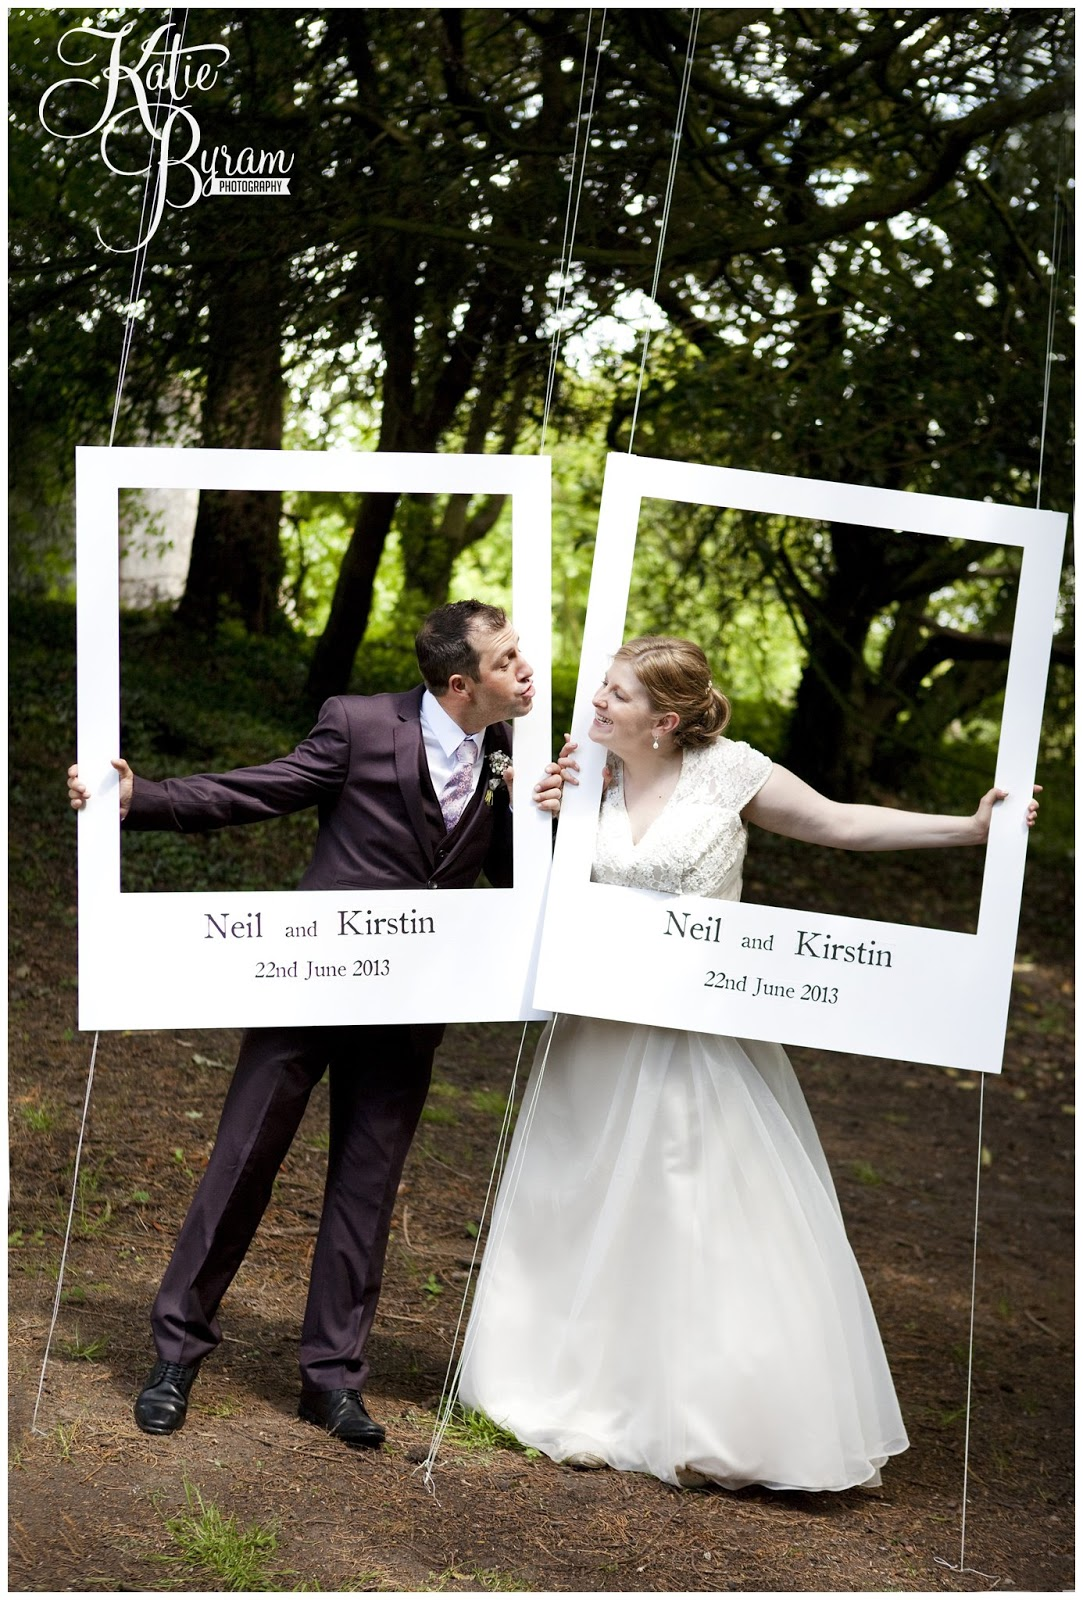 Ellingham Hall Wedding Photography (Kirstin & Neil) » Katie Byram ...